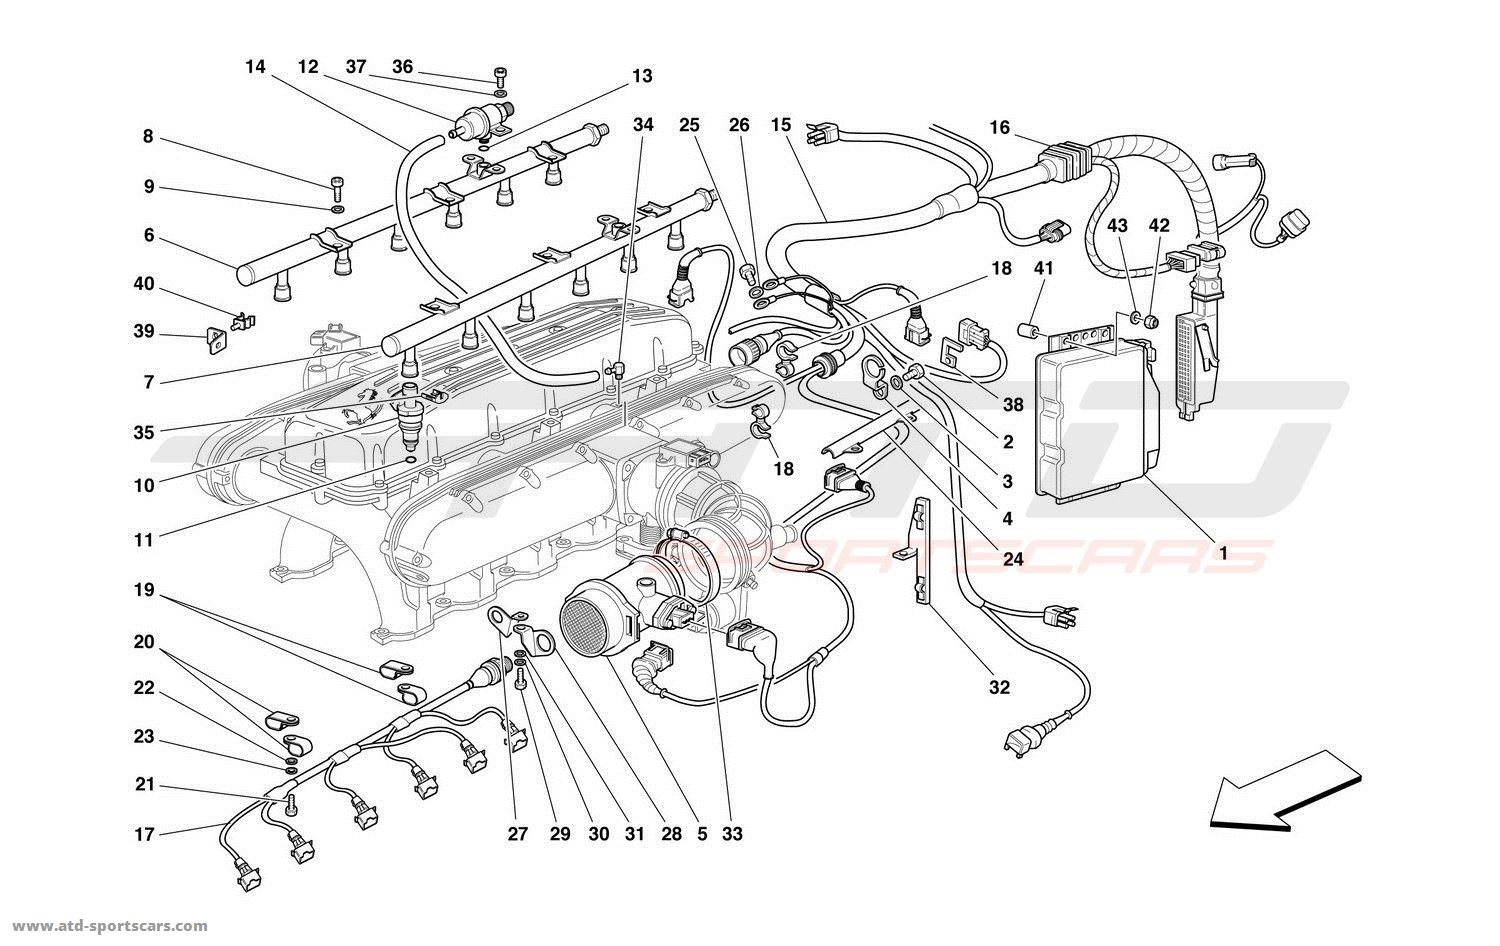 Ferrari 550 Parts Diagram. Ferrari. Auto Parts Catalog And